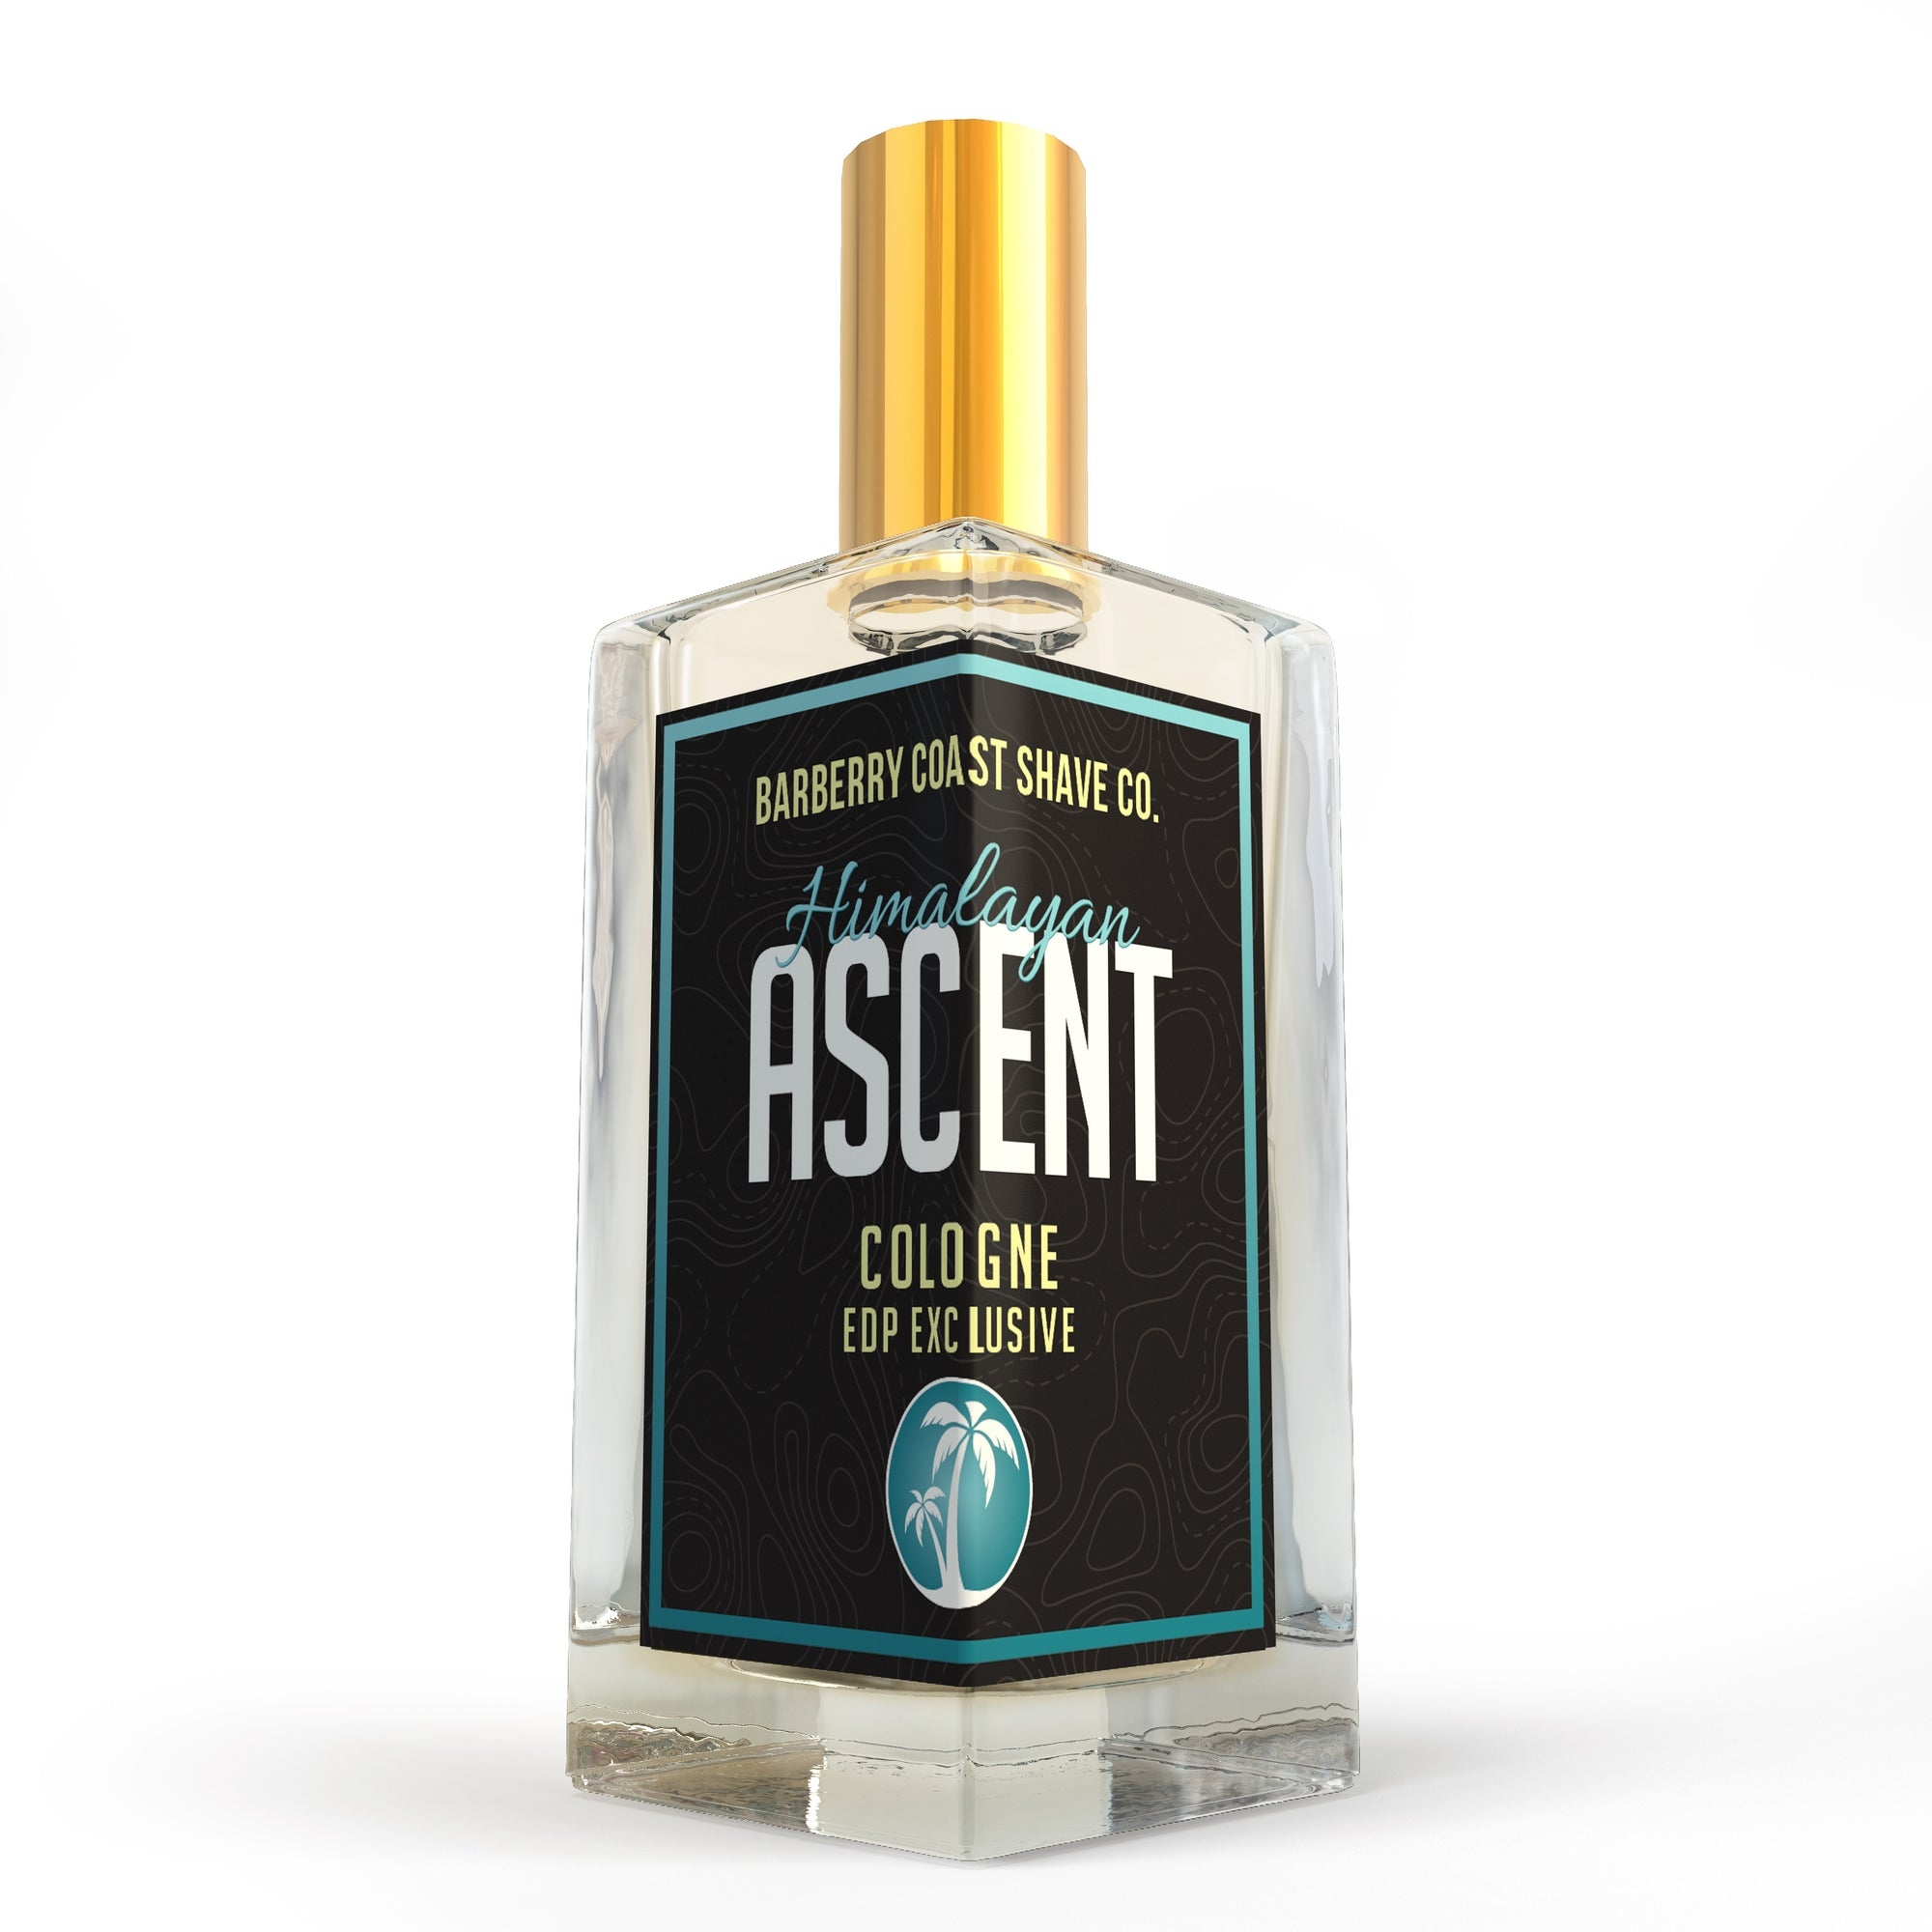 Himalayan Ascent Cologne - EDP Exclusive